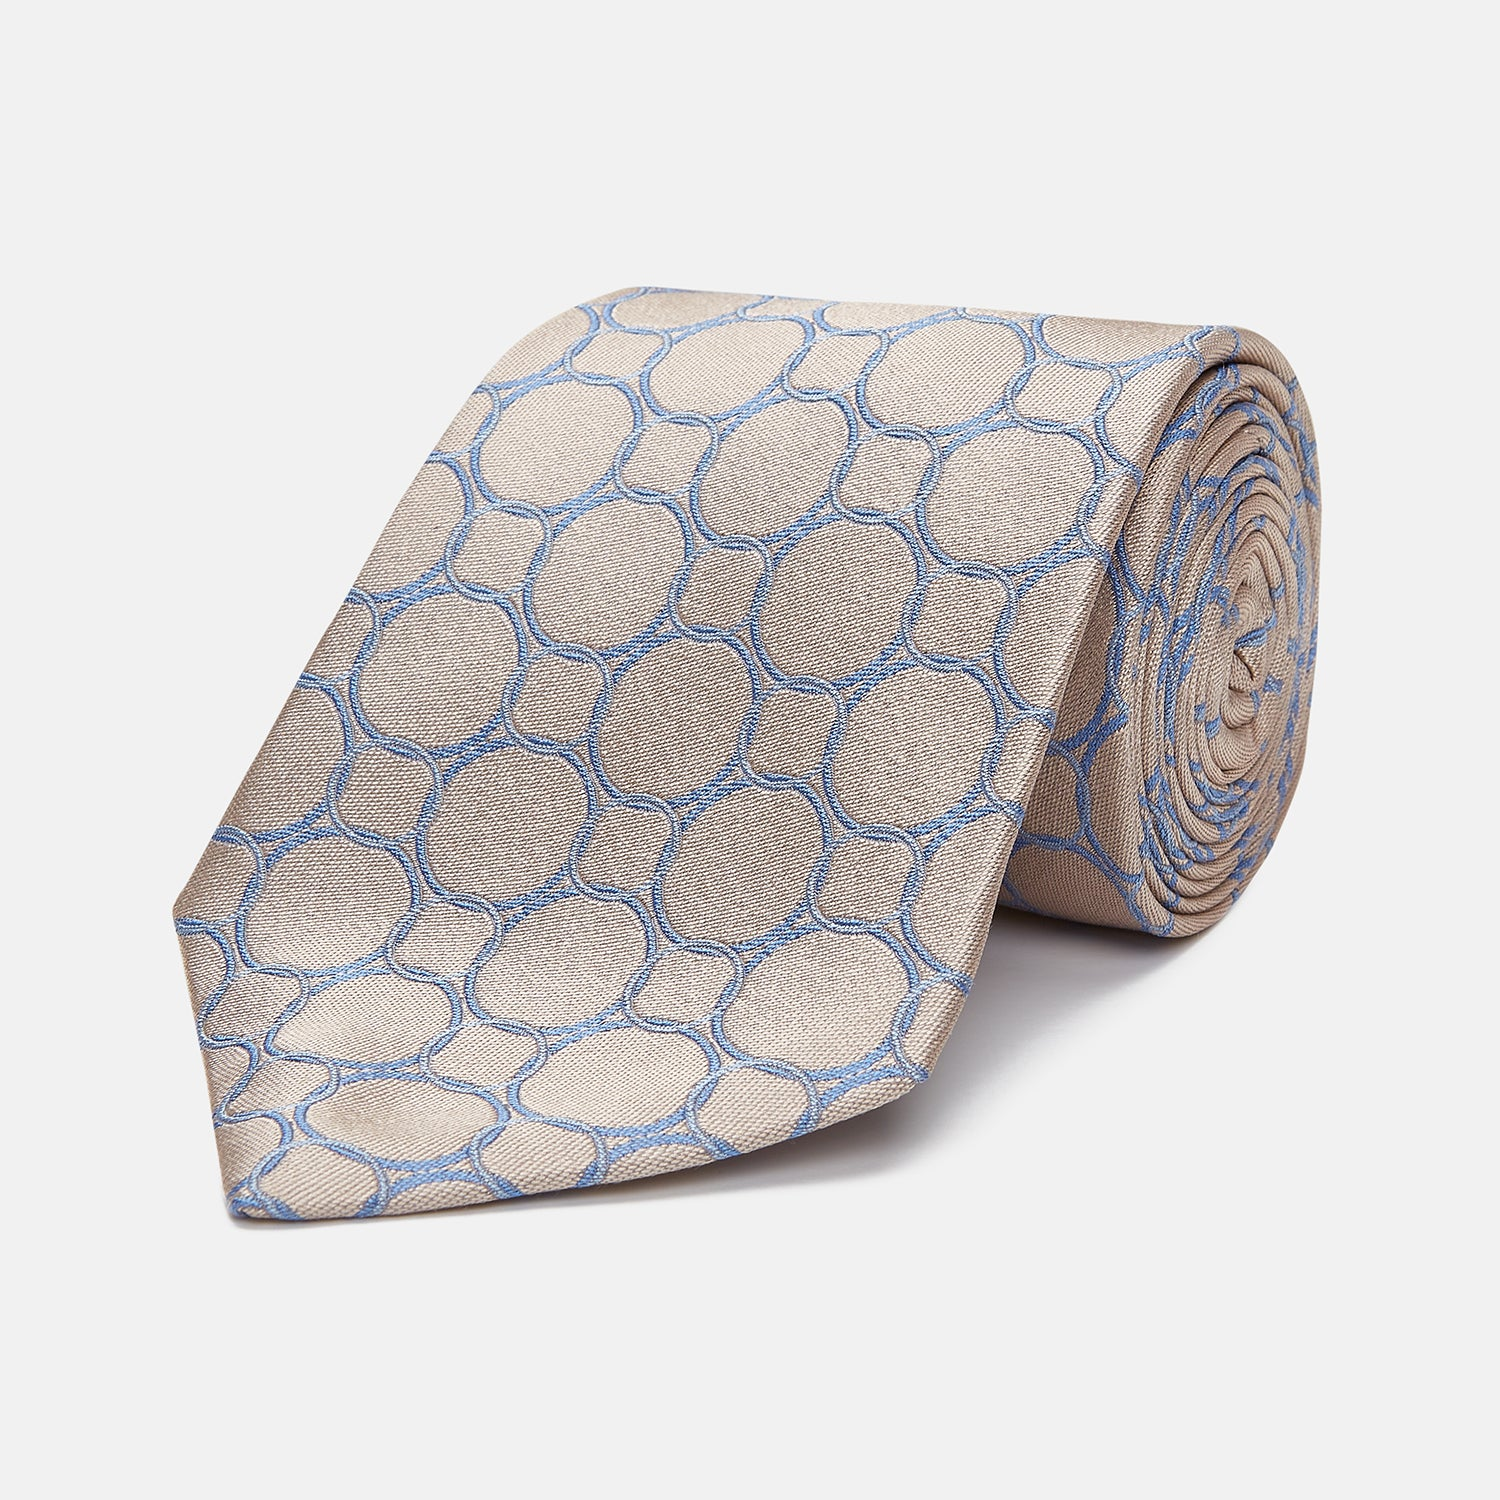 Toffee and Powder Blue Circle Jacquard Silk Tie